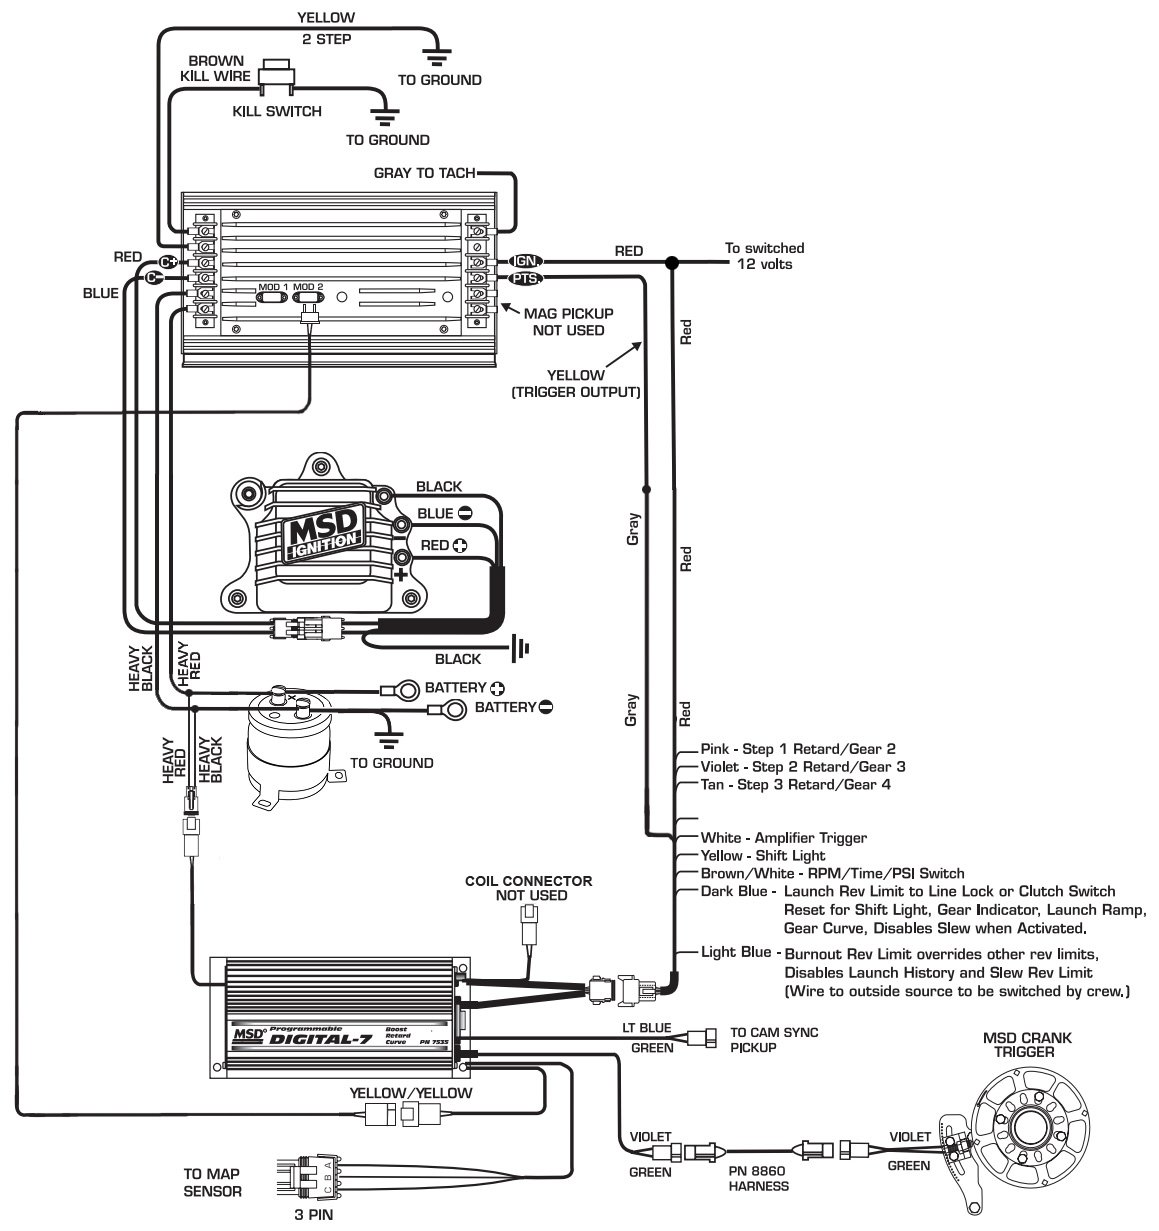 Kymco Scooter Ks9e09cop15100 Crankcase Oil Pump Part 15100 Keb7 E000 Pump Assembly Oil as well Manuals as well Razor Dune Buggy Wiring Diagram furthermore Pride Hurricane Wiring Diagram also Razor Mx350 Wiring Diagram. on razor e300 wiring diagram